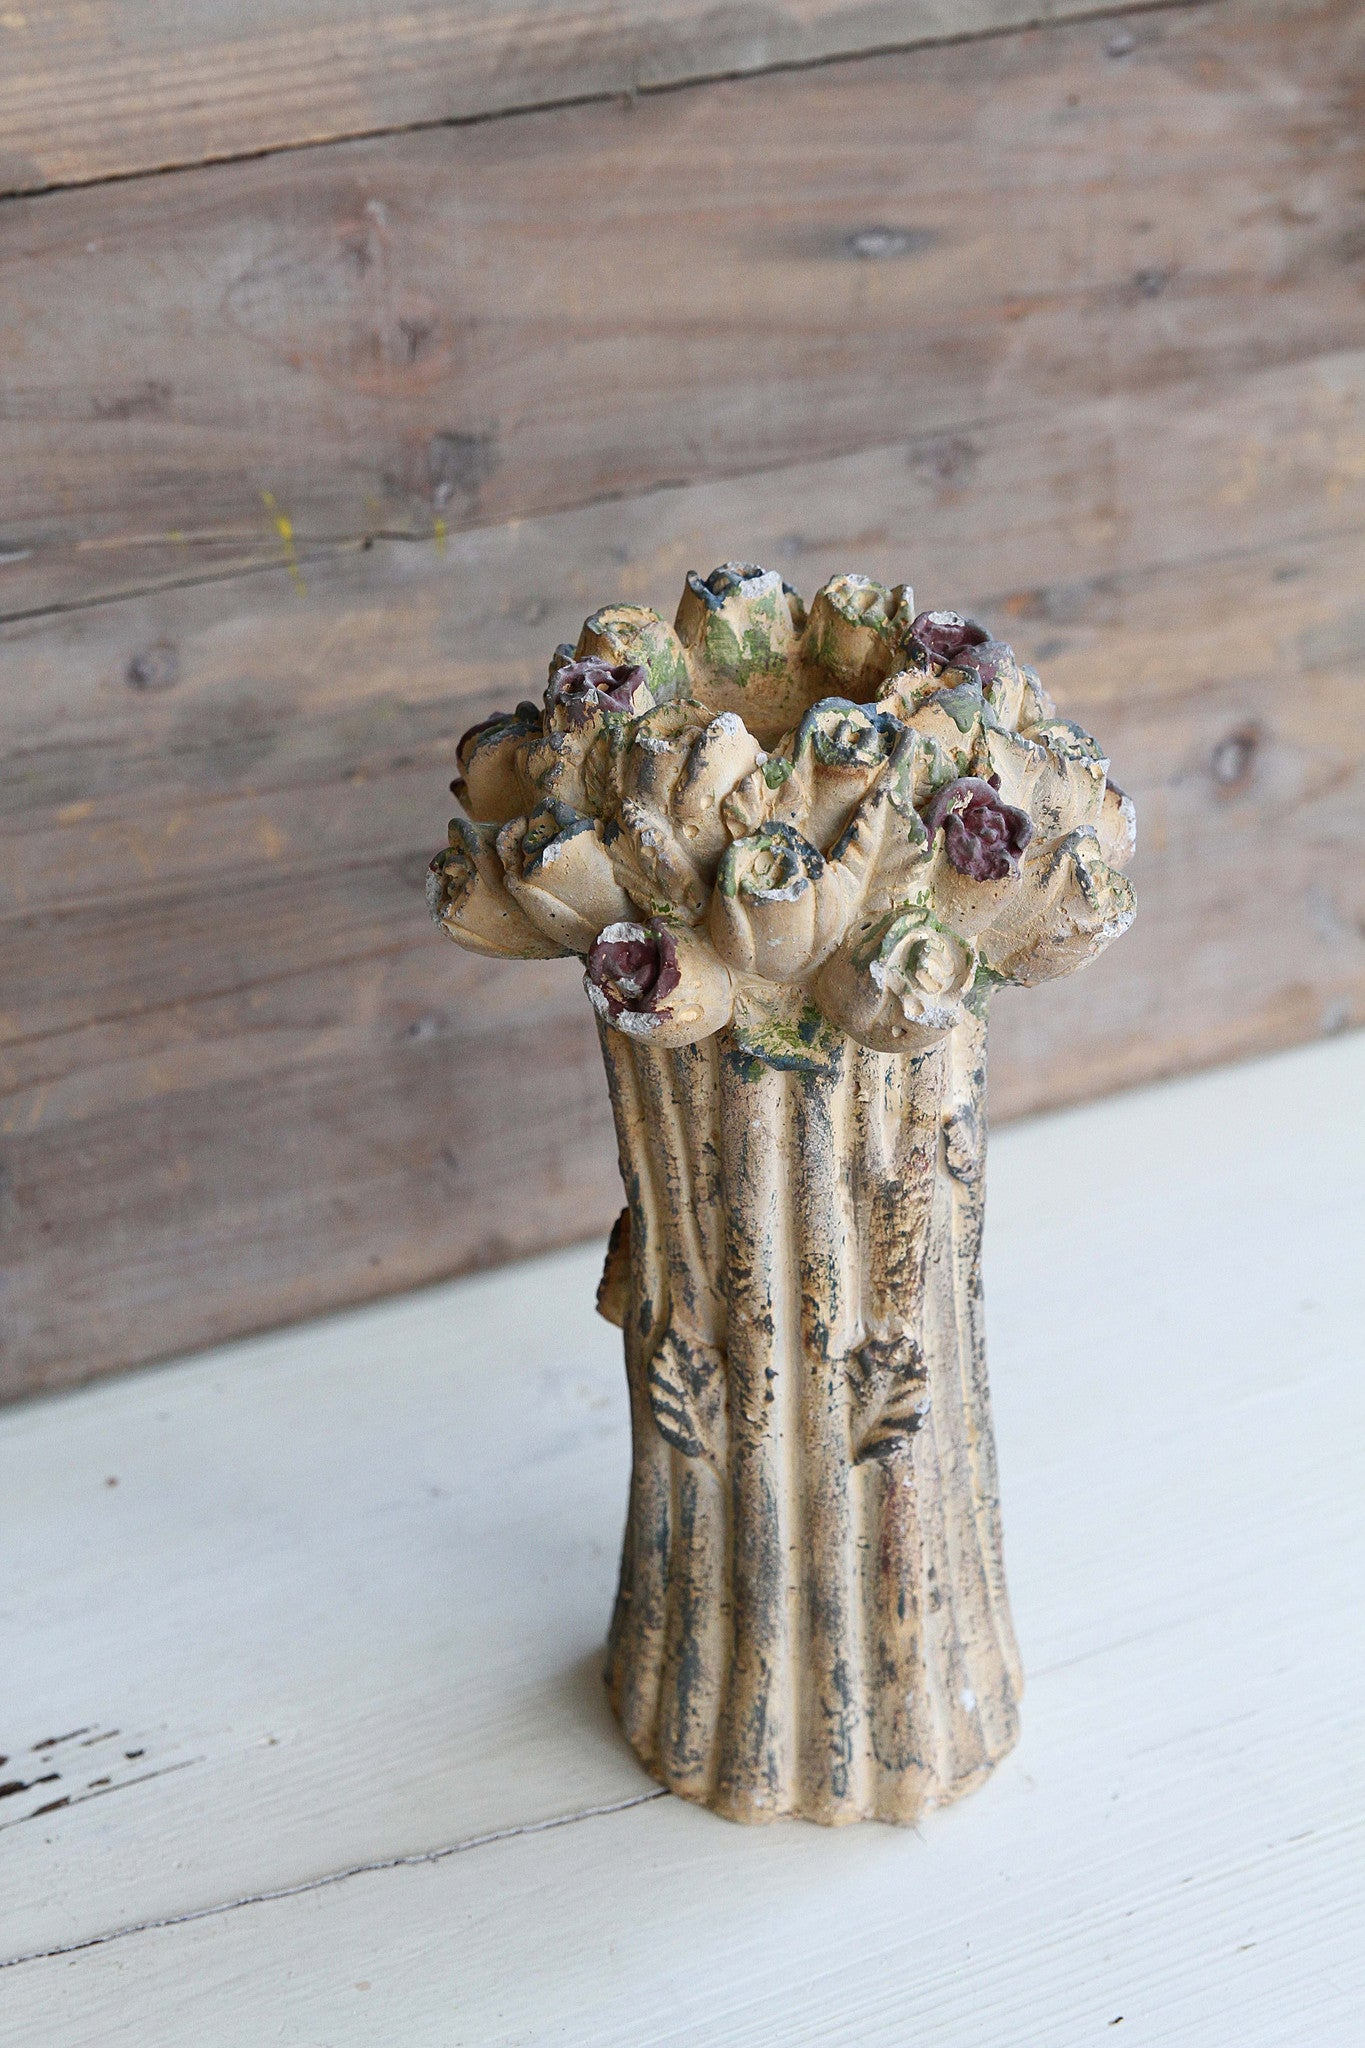 Ceramic Antique Rosebud Candleholder